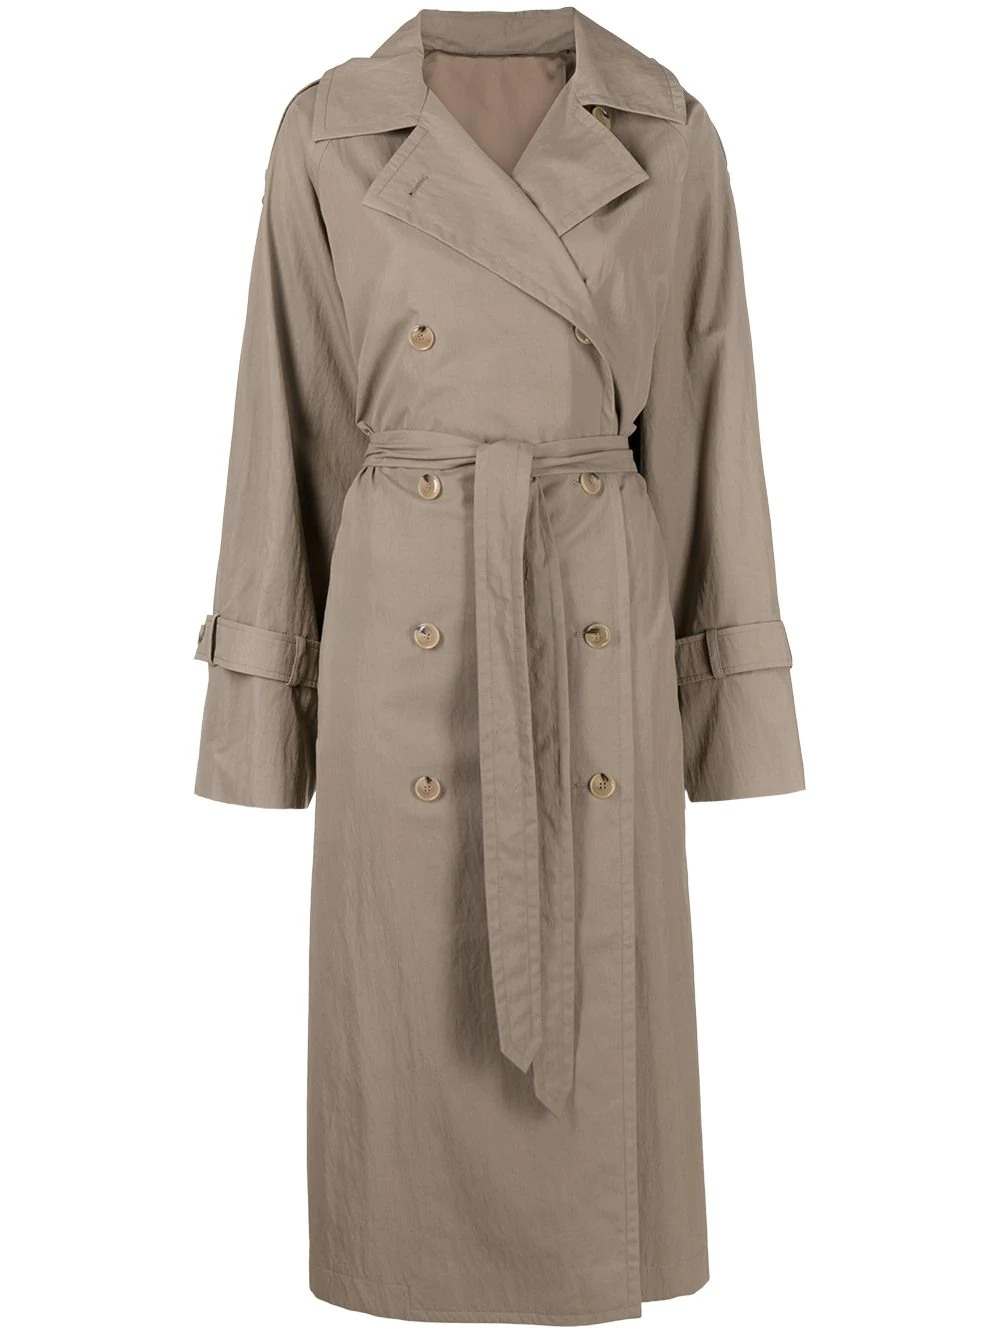 toteme-tied-waist-double-breasted-trench-coat